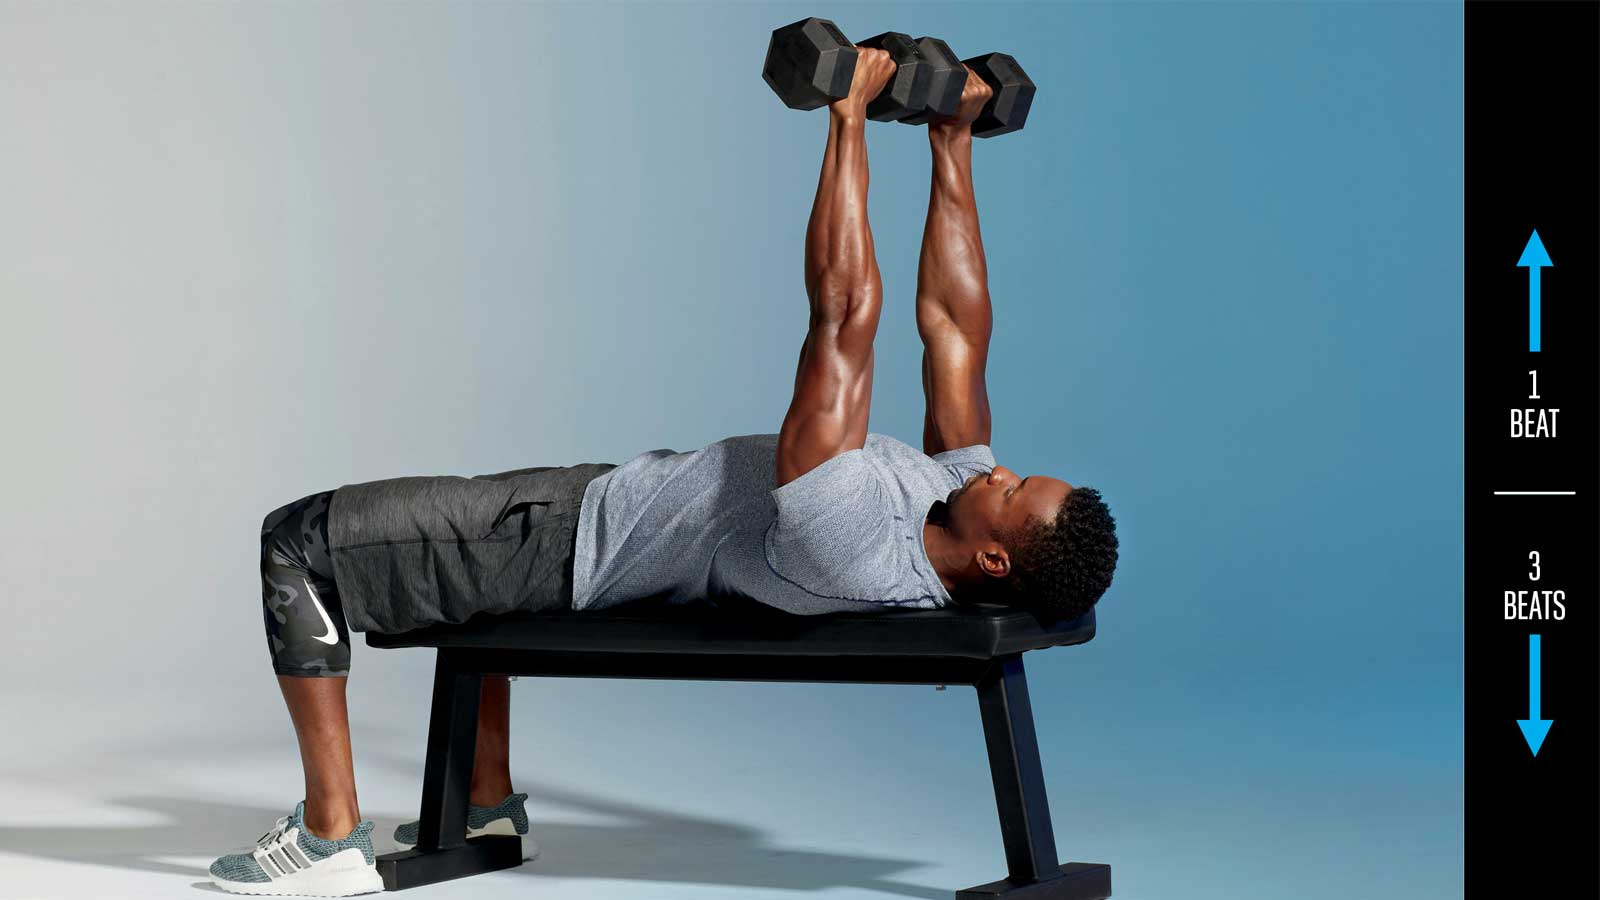 Chest Press sign